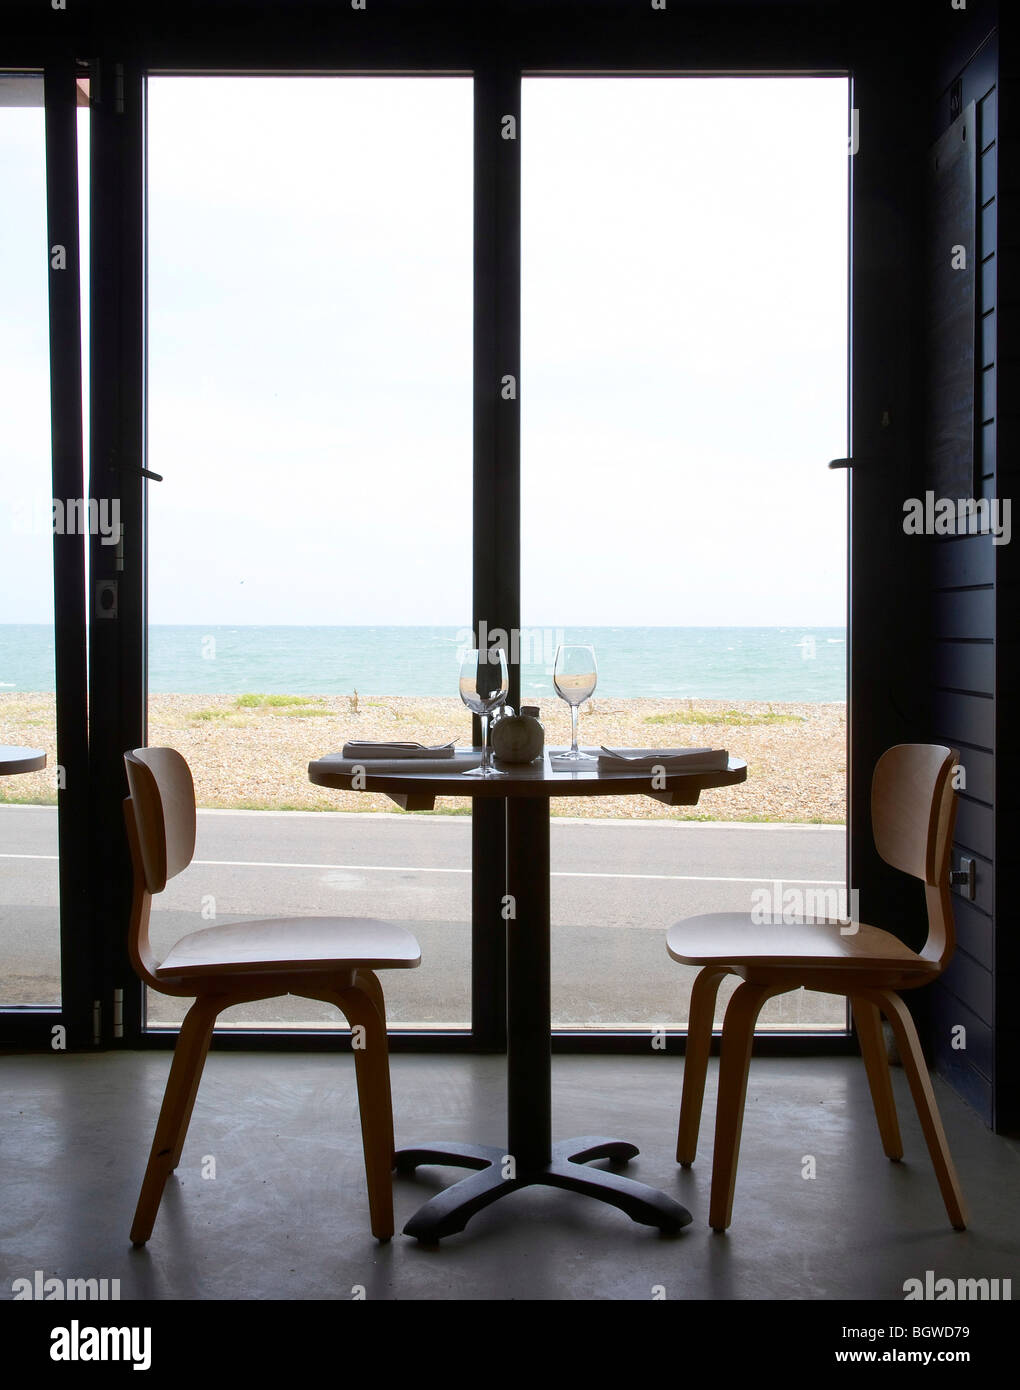 East Beach Cafe Littlehampton Heatherwick Studio